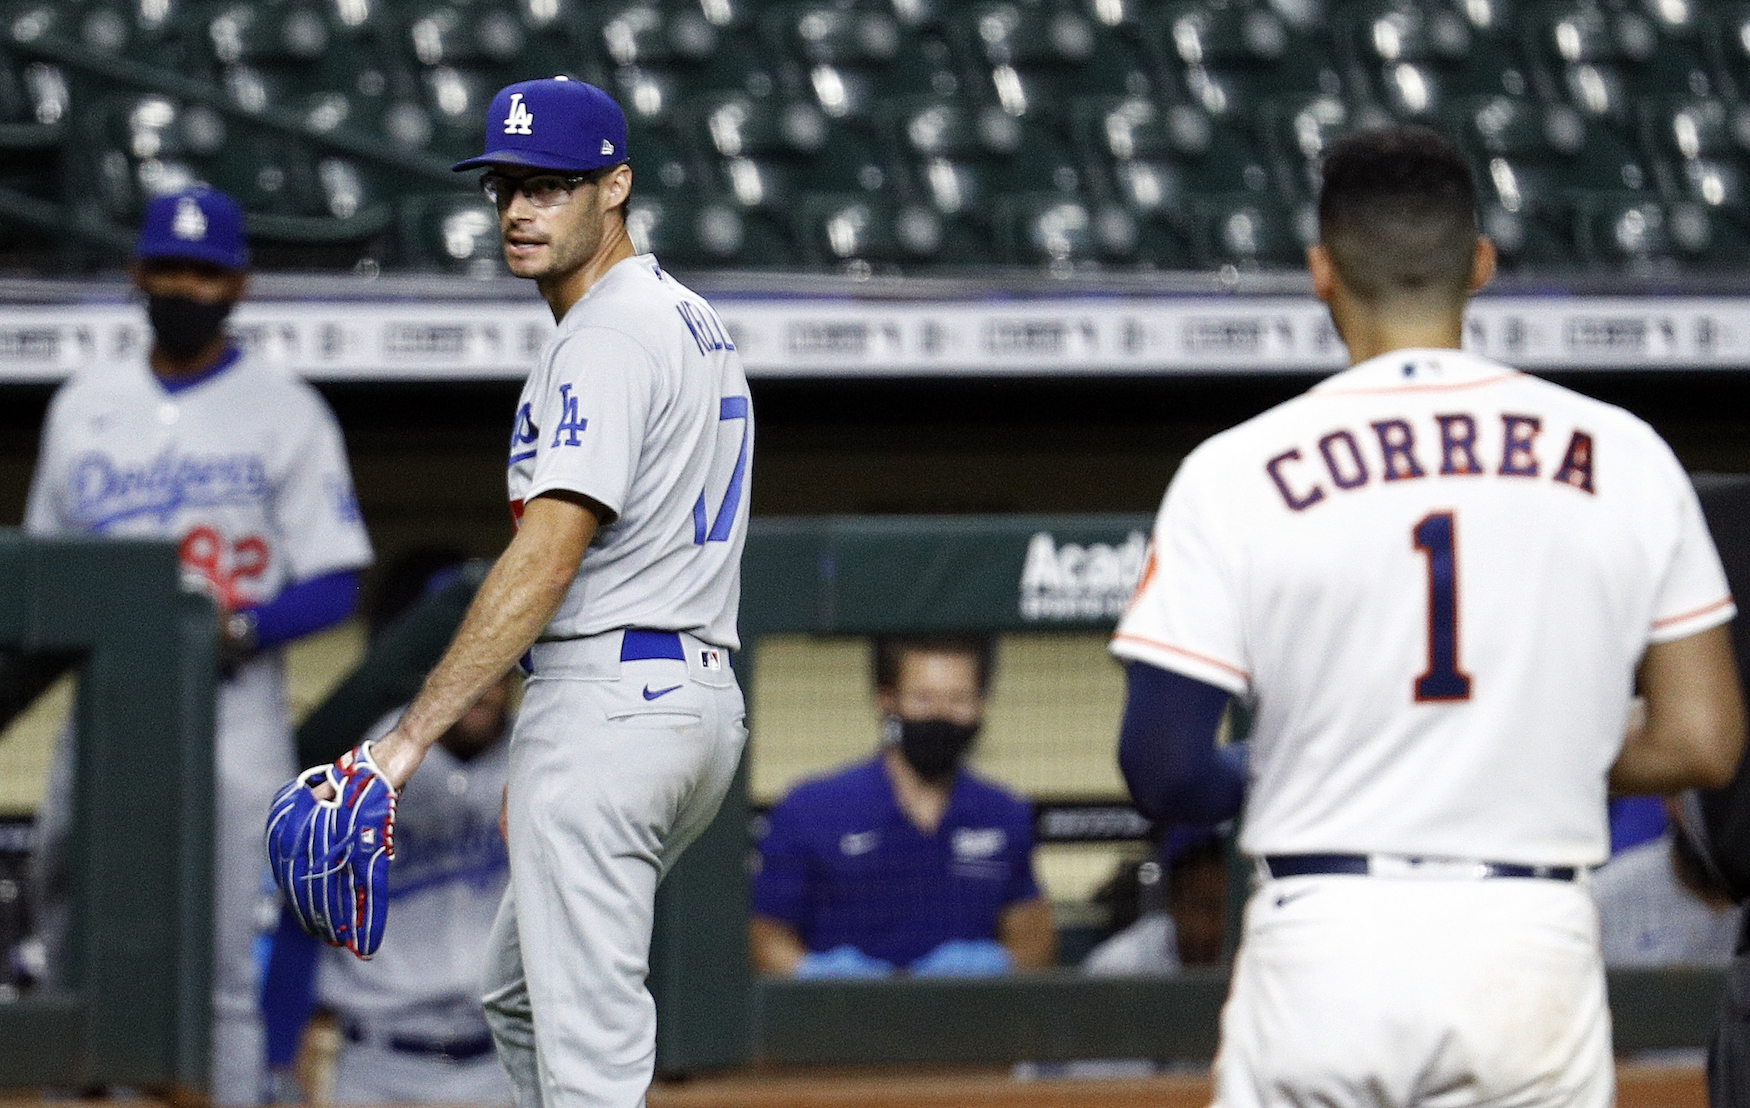 After throwing at two Houston Astros, Joe Kelly received an eight-game suspension